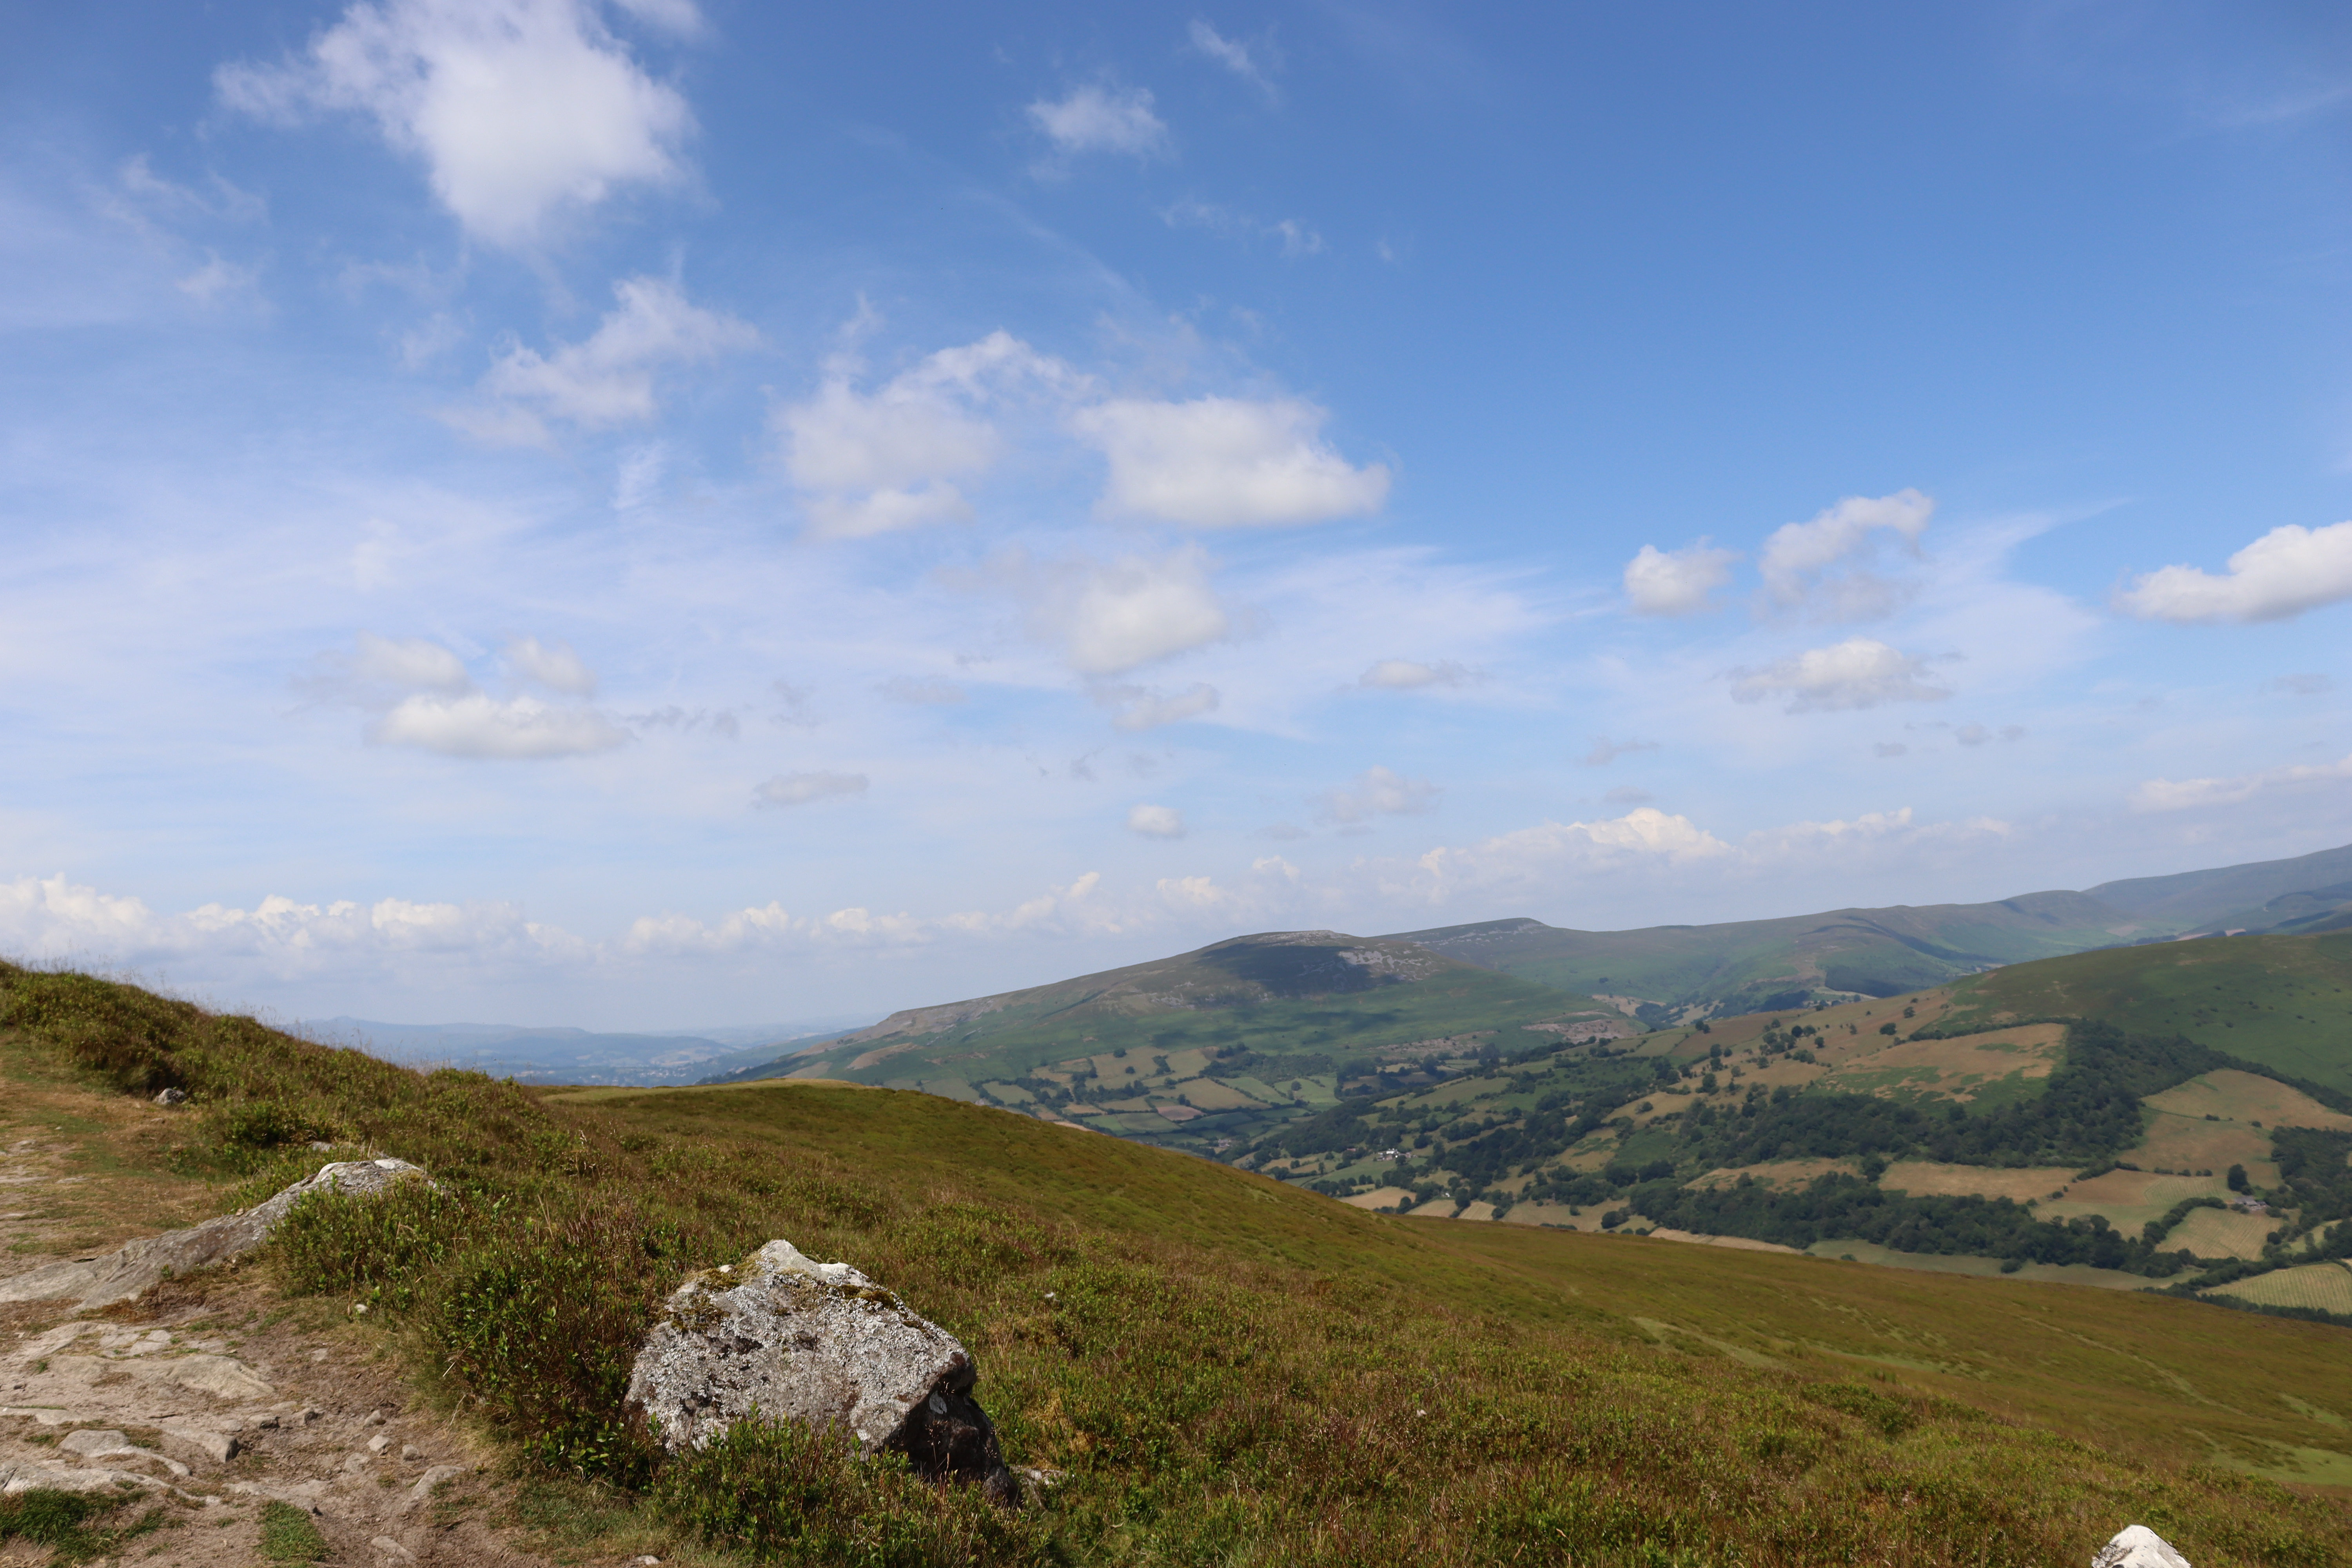 View from the path at the top of sugar loaf mountain.